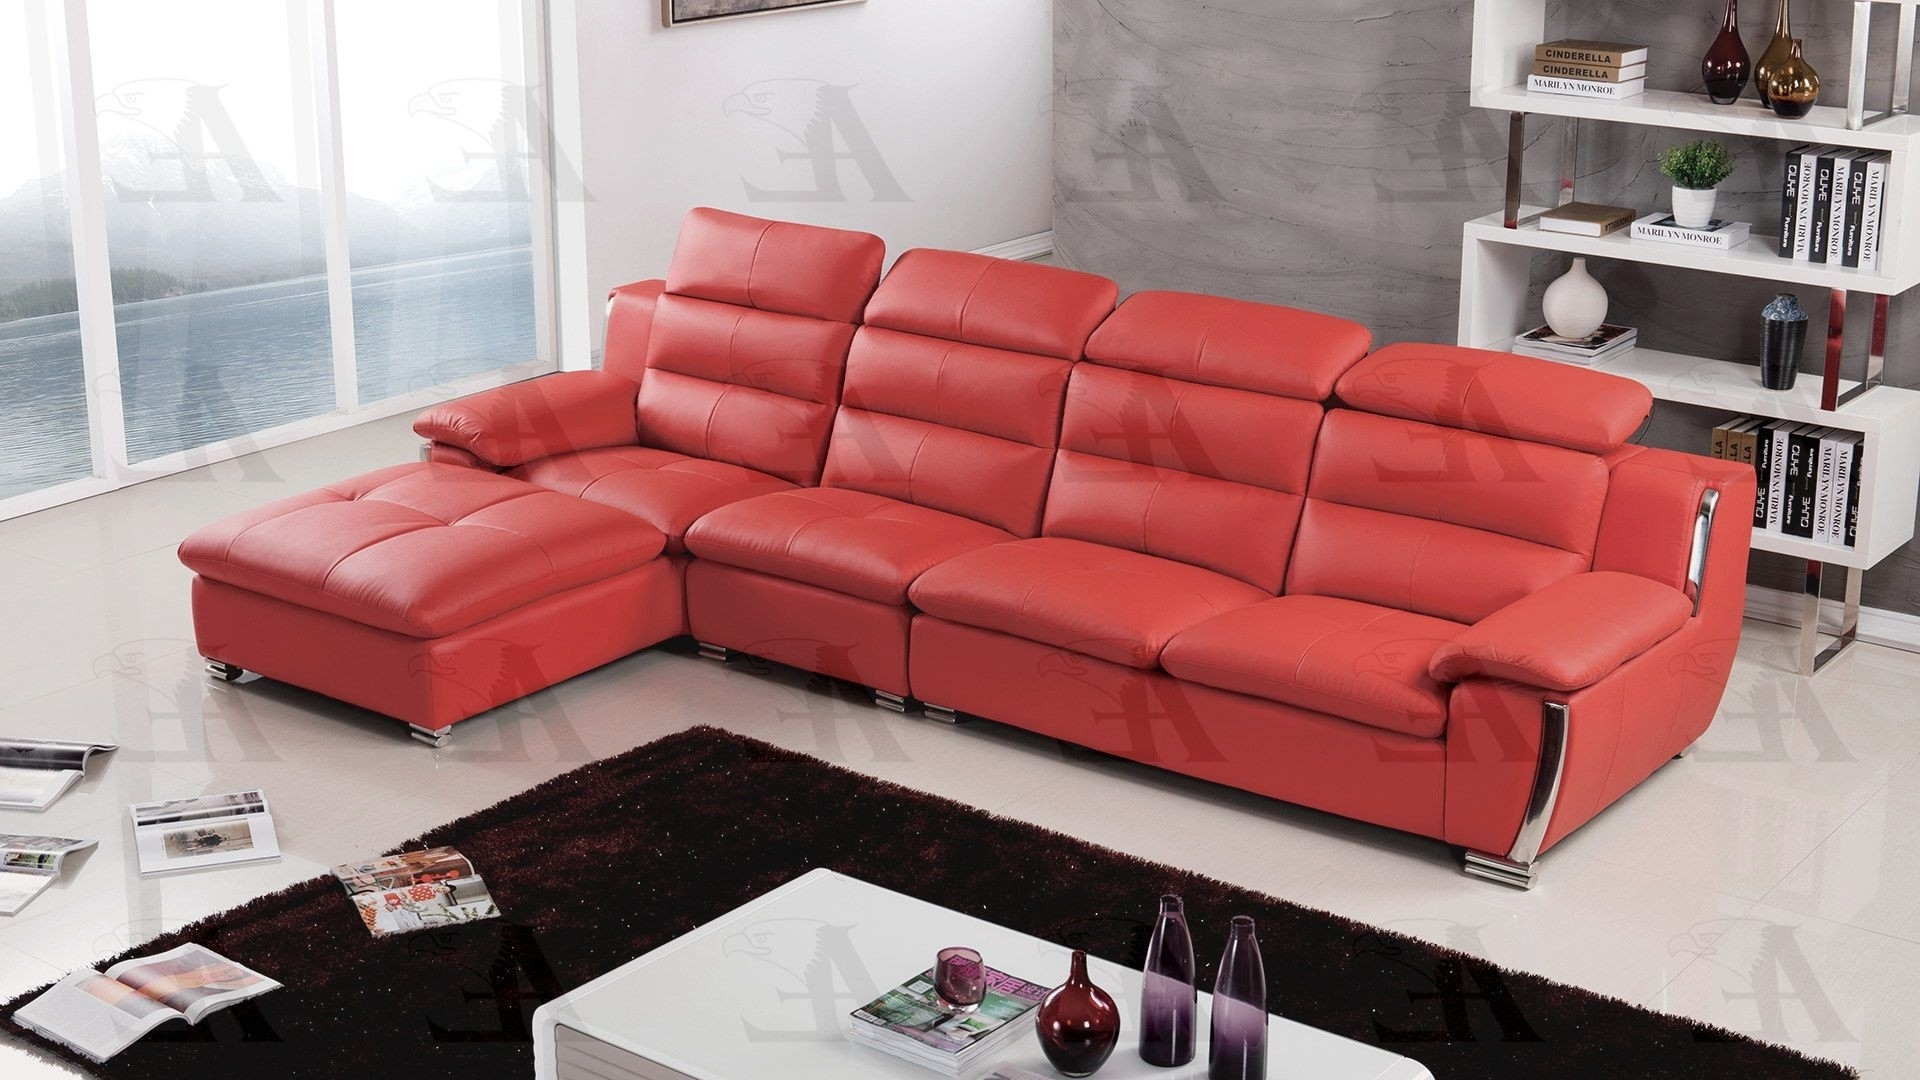 Faux Leather Sectional Inside Preferred Red Faux Leather Sectionals (View 9 of 20)